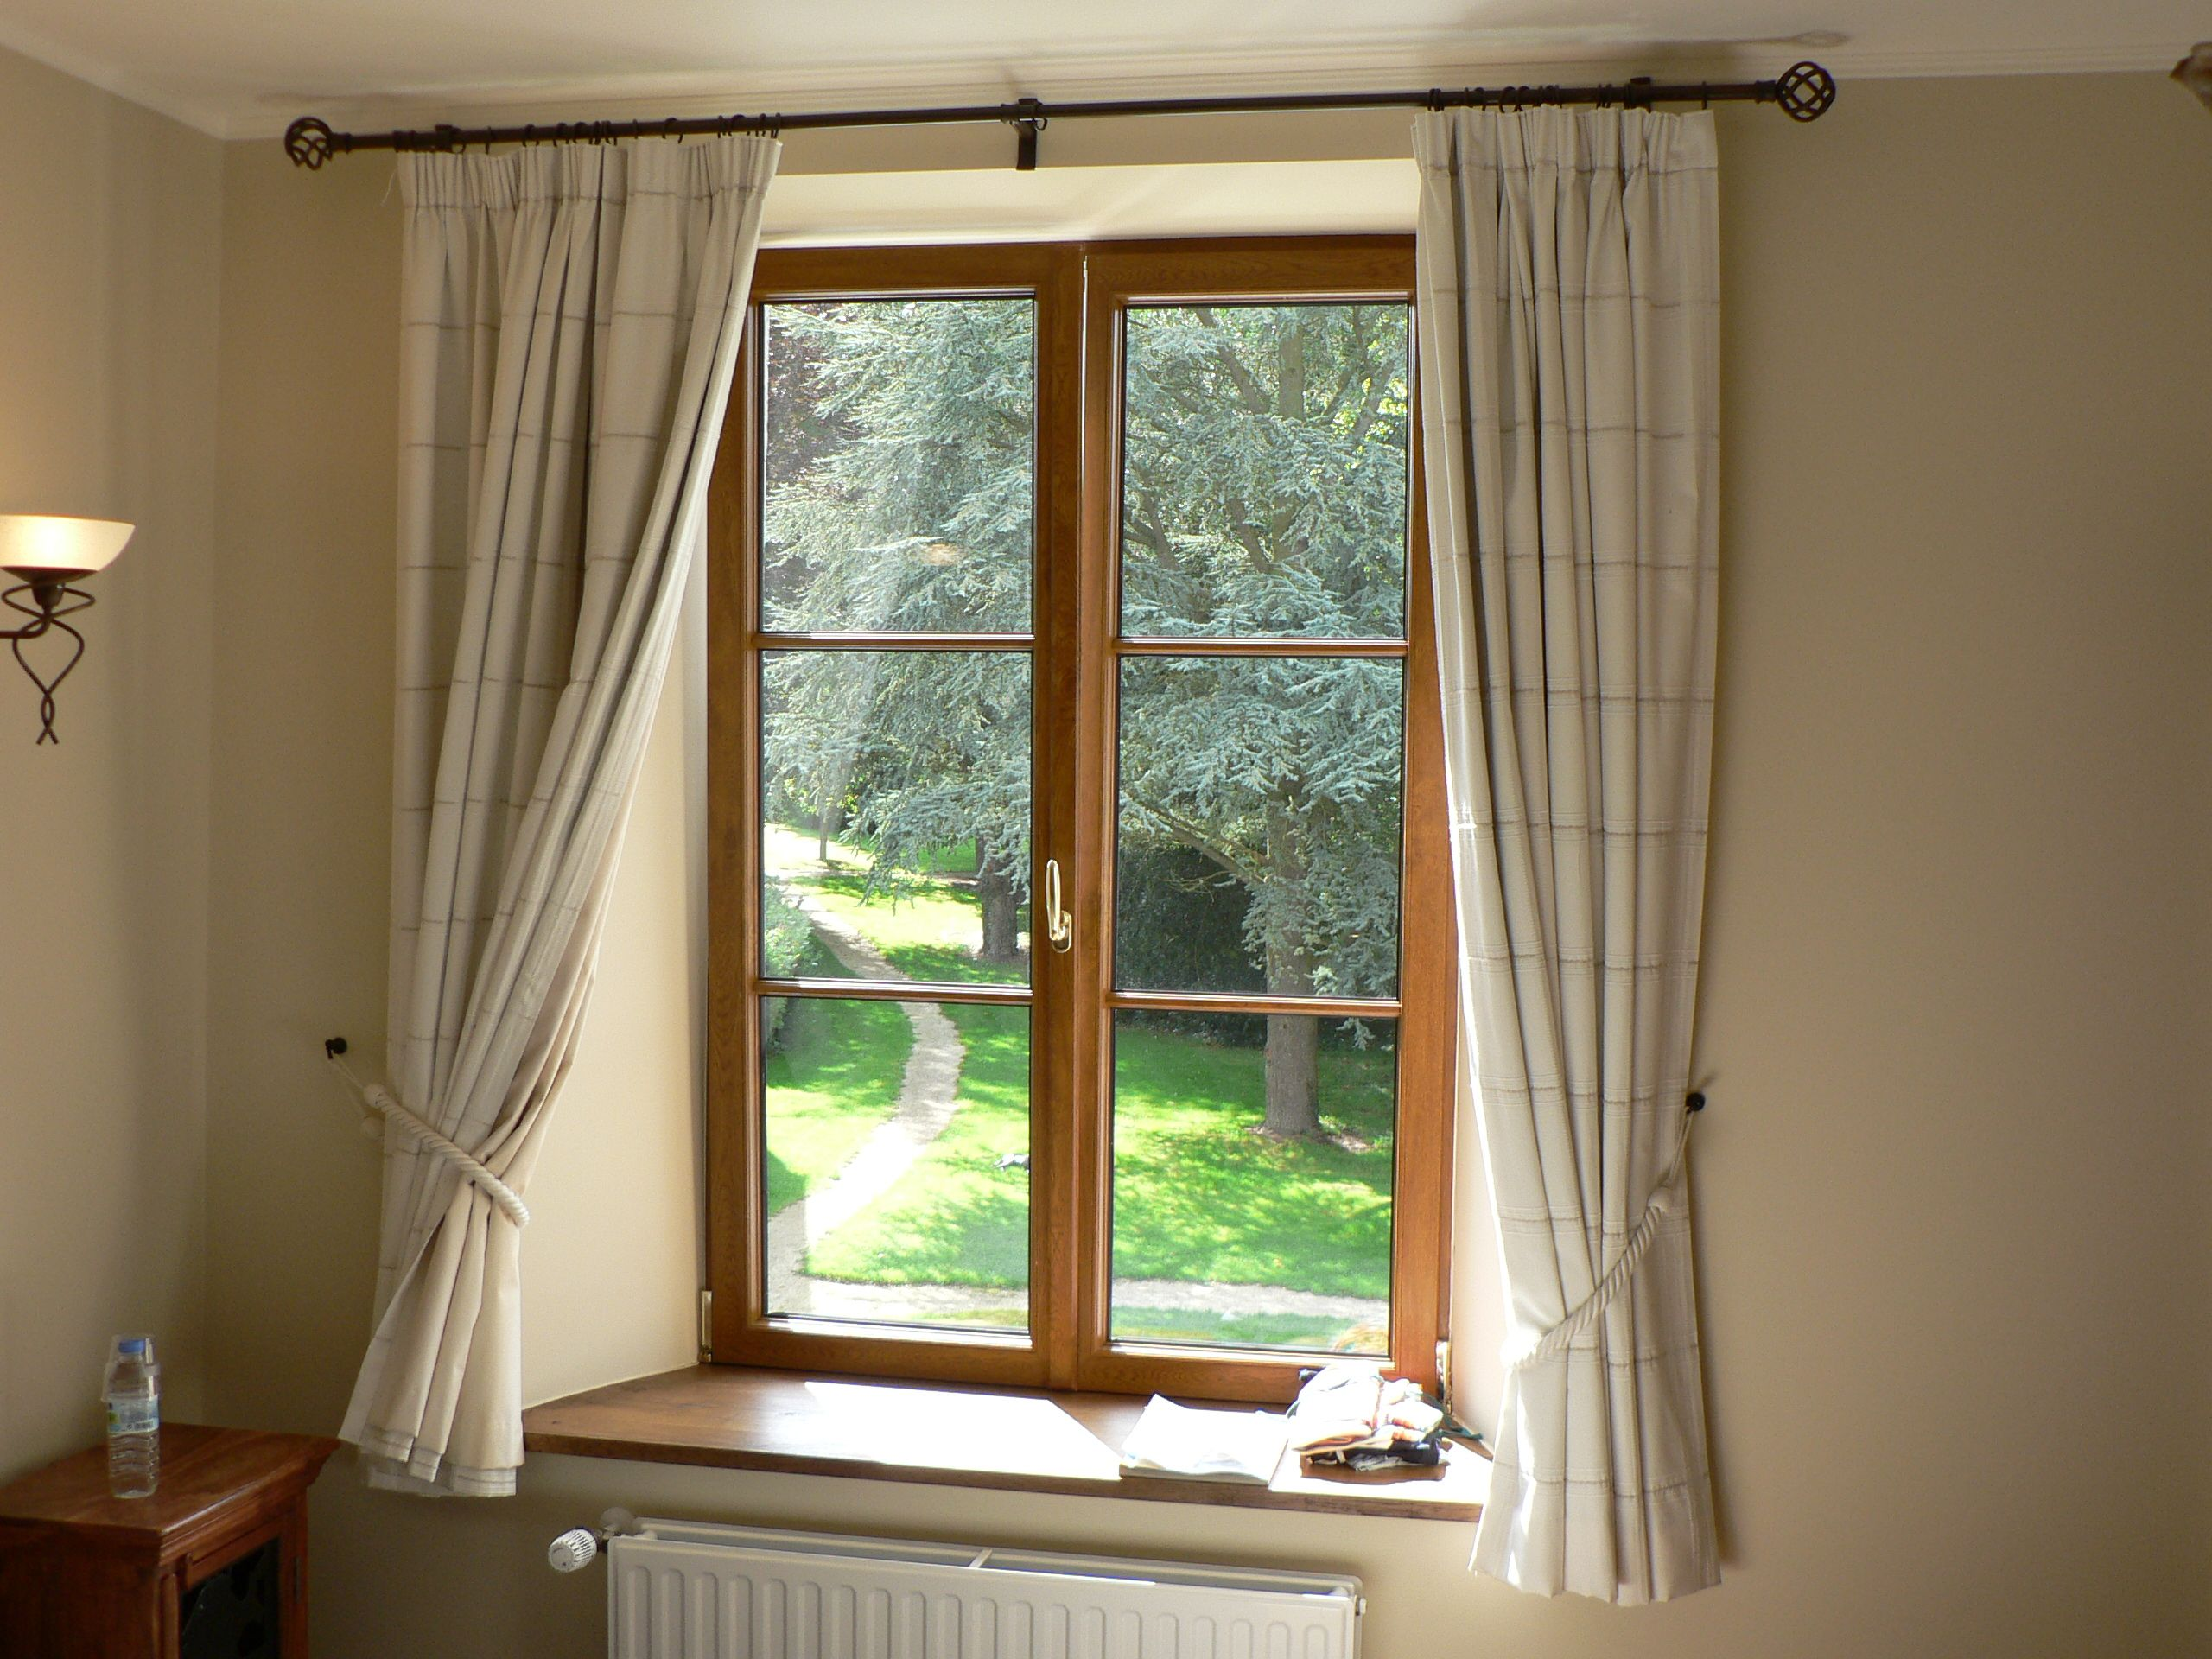 3 window bedroom   ways house window replacement adds value to your home  house